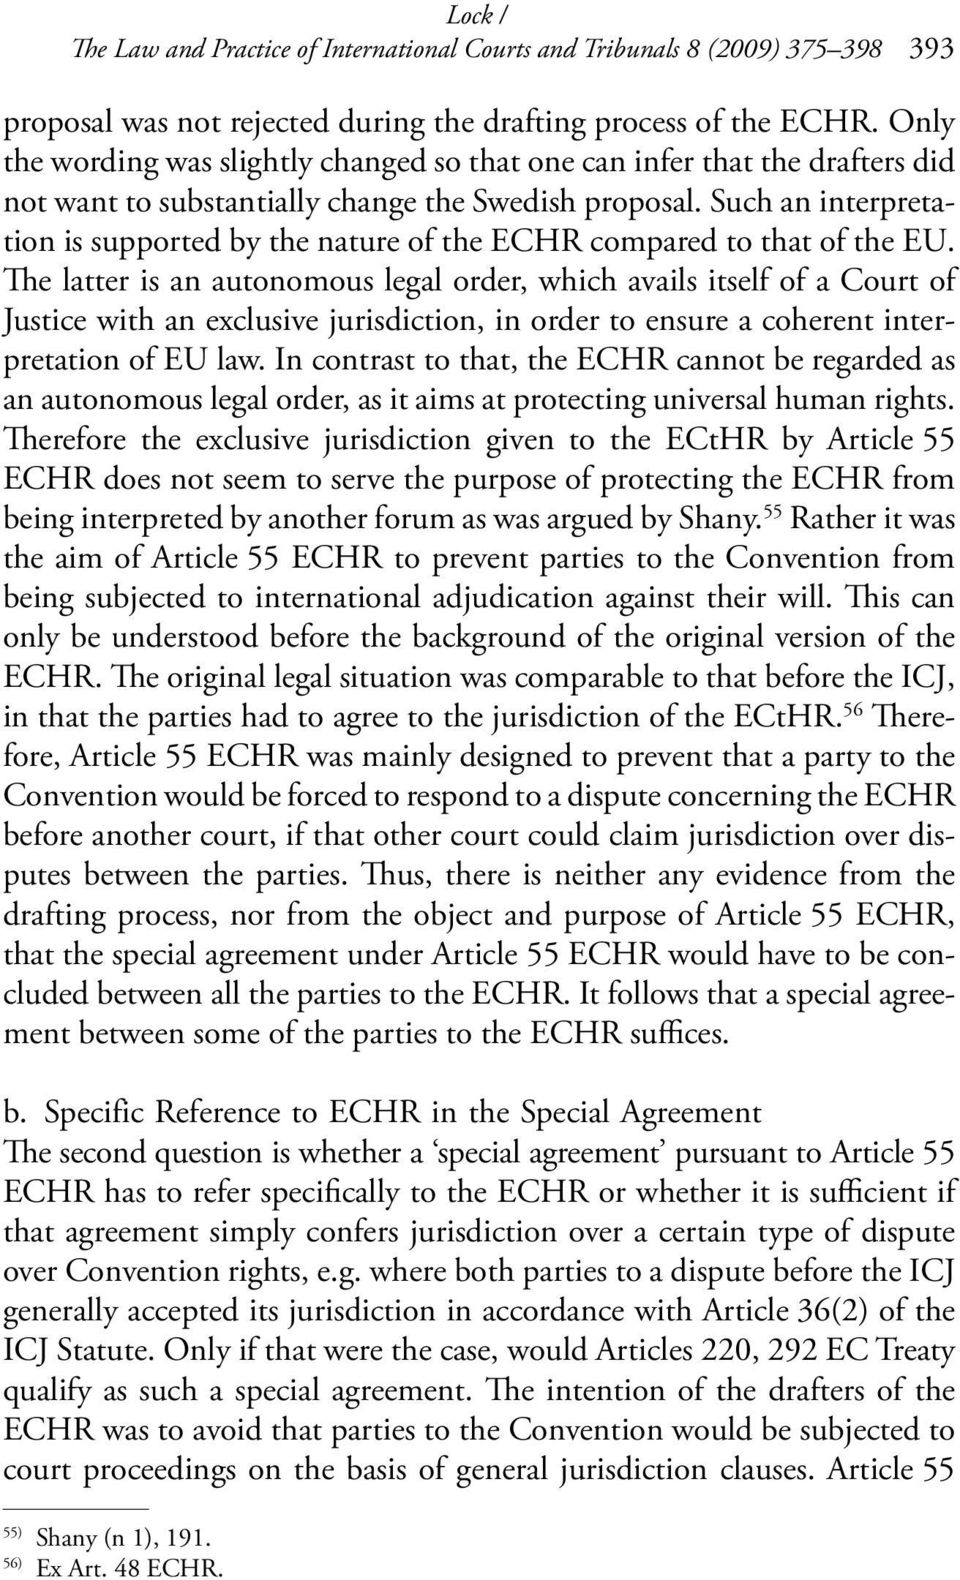 Such an interpretation is supported by the nature of the ECHR compared to that of the EU.